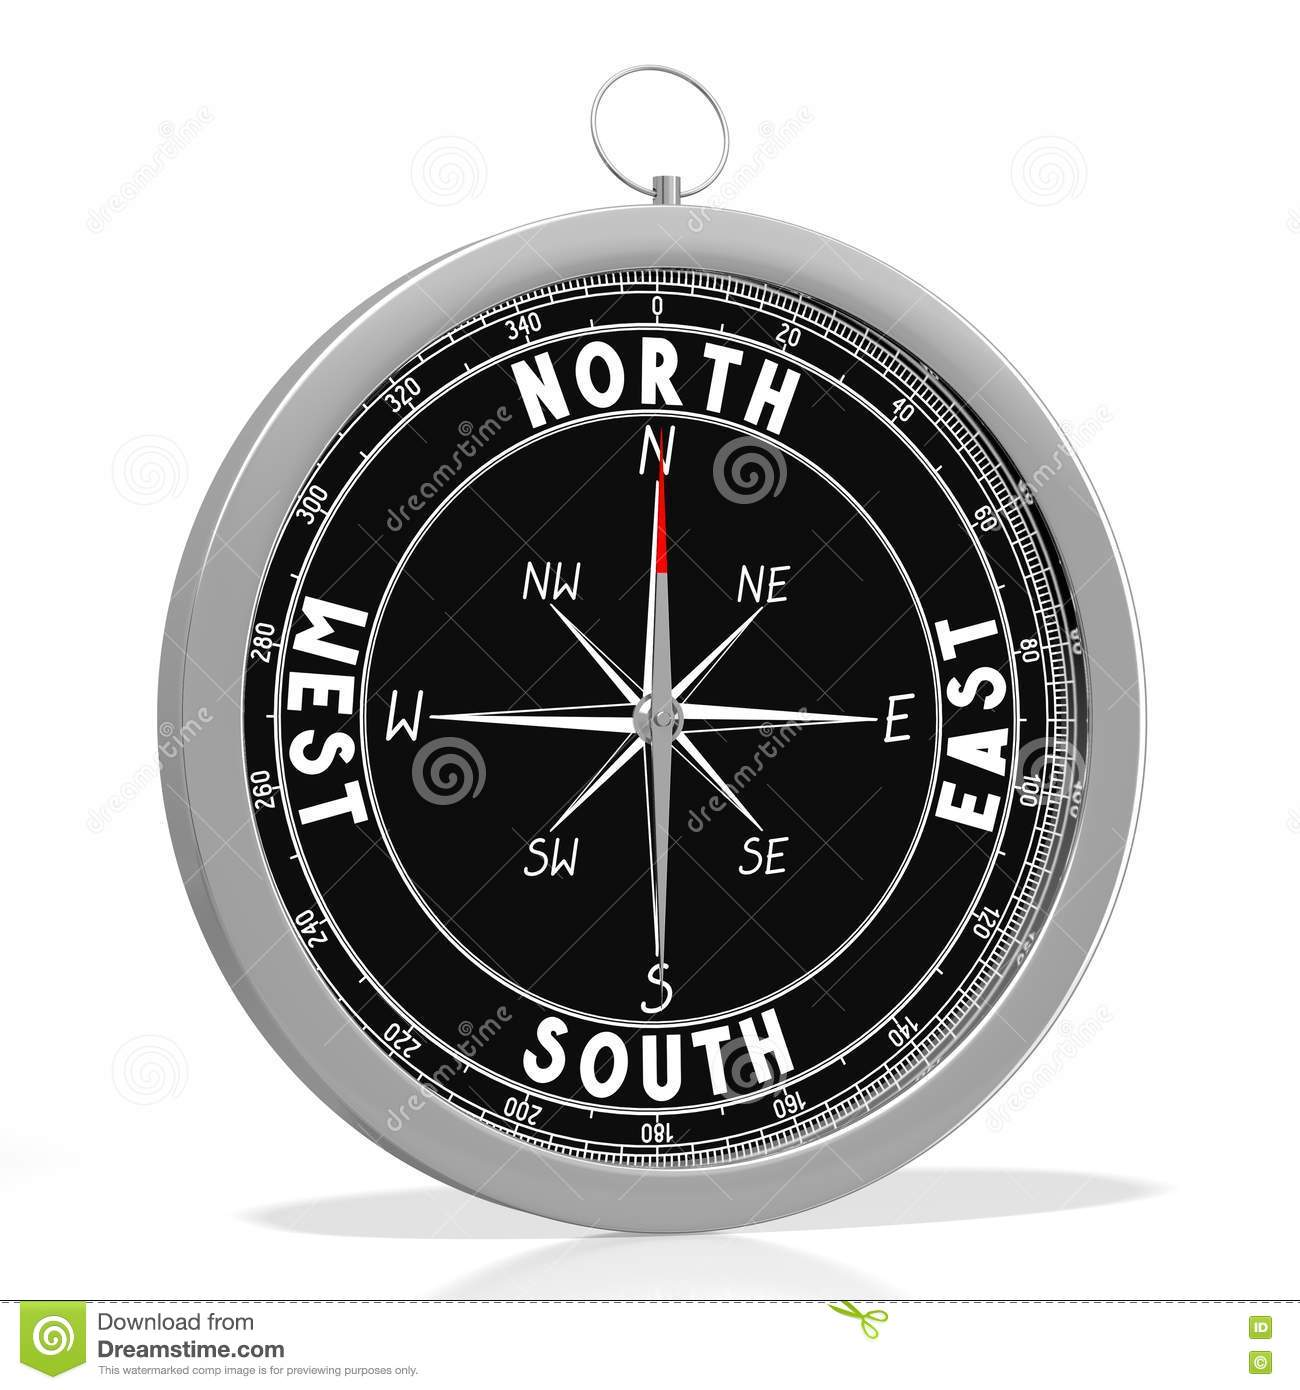 how to find south west direction